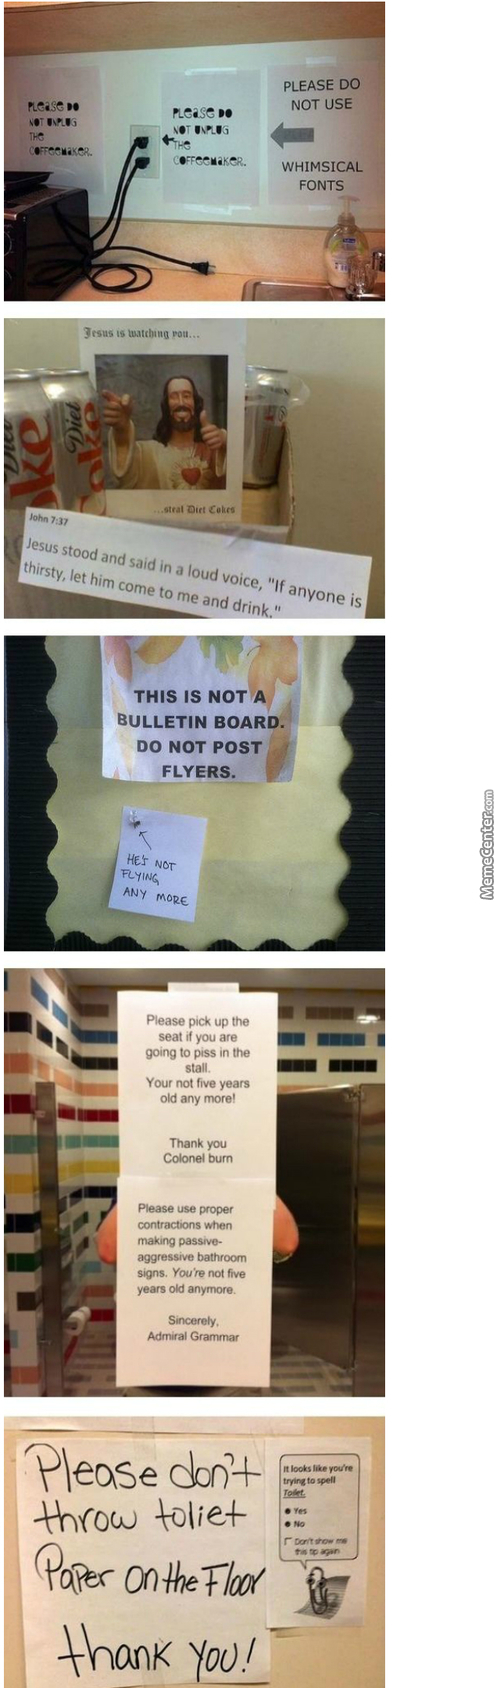 People Writting Notes Think They Are So Smart, Well This Is A Free Country!